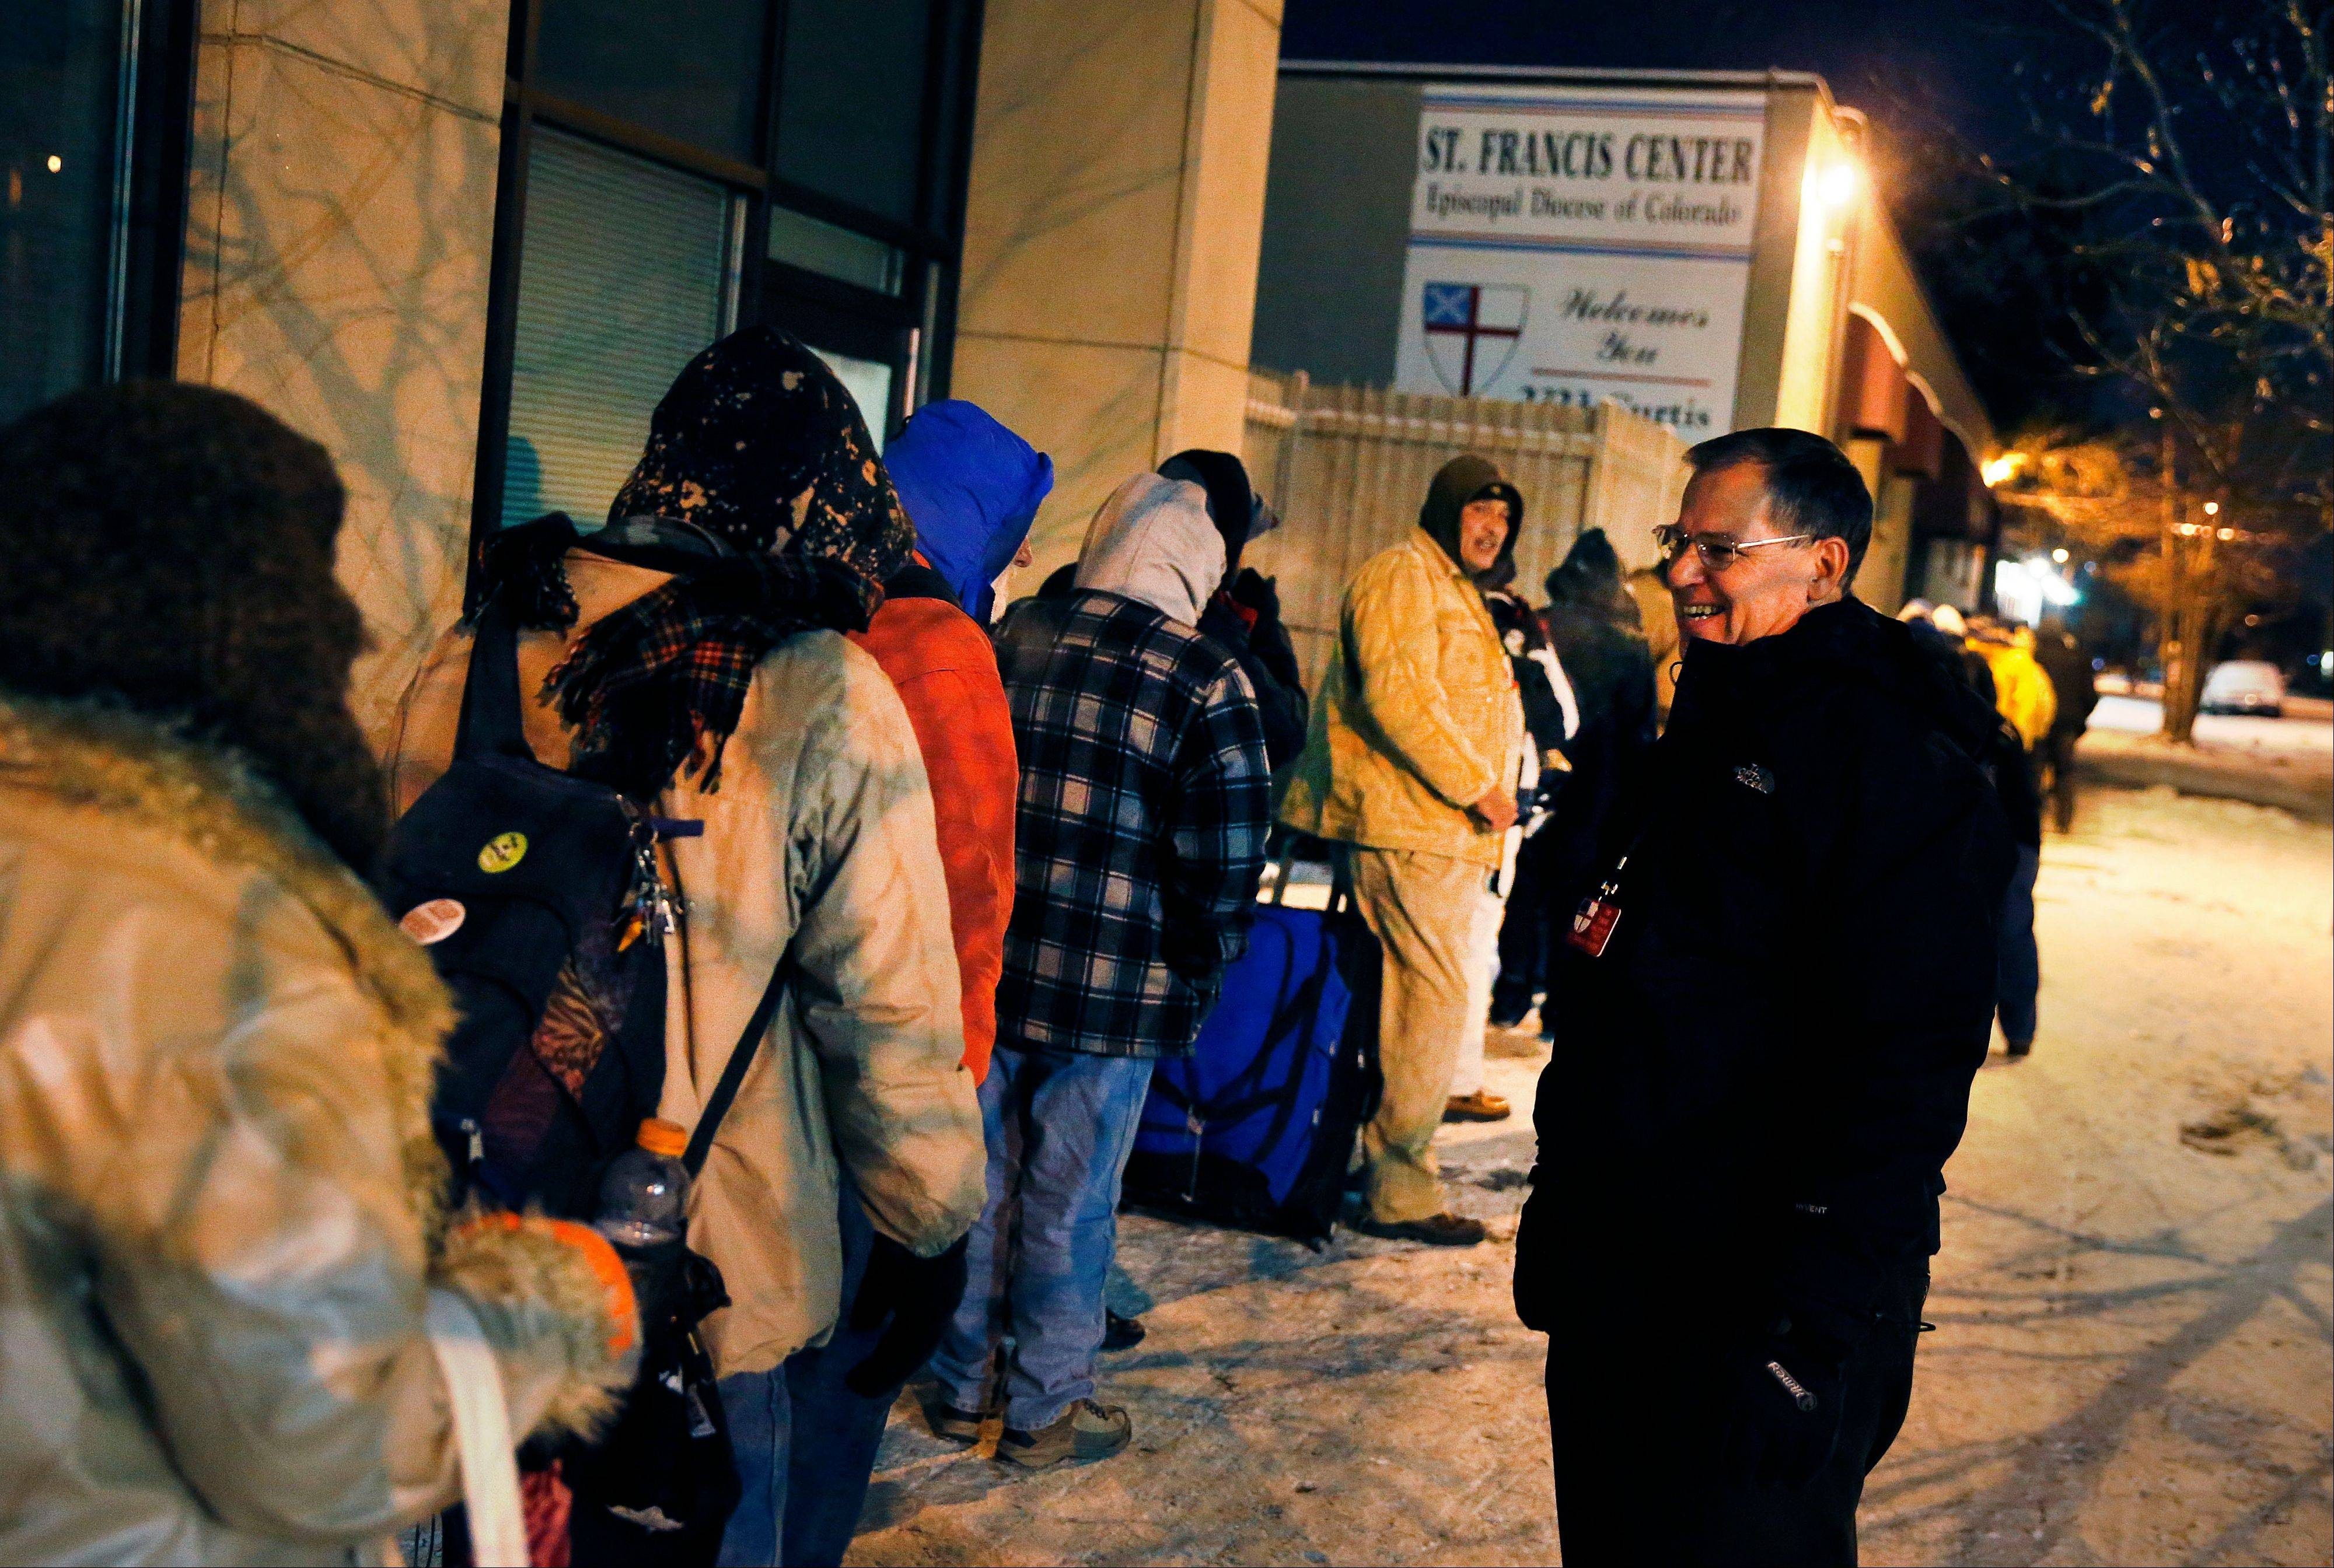 Before dawn and in -9 degree weather, Tom Tuning, right, greets men who wait for the opening of the St. Francis Center's day shelter, where Tuning is finance director, in downtown Denver, Thursday Dec. 5, 2013.